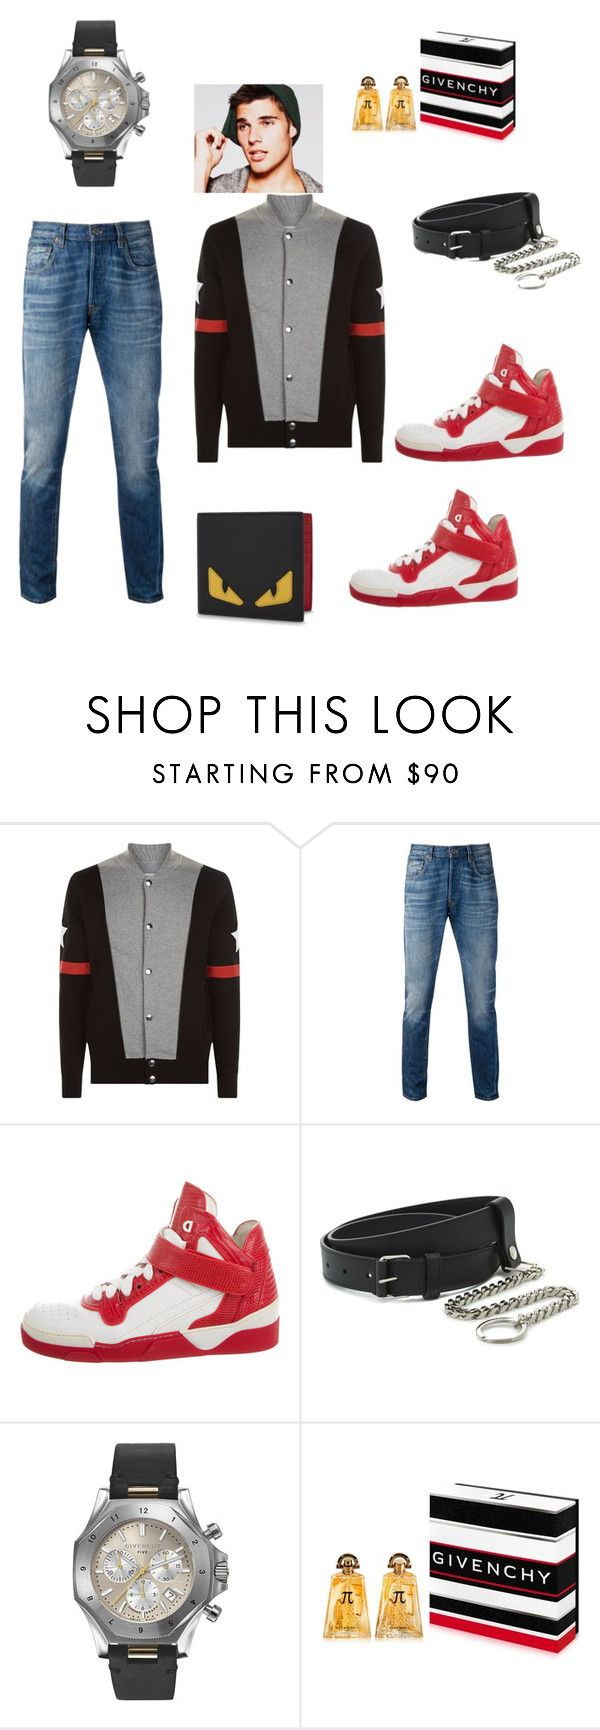 menlook by malishevan on Polyvore featuring Levi's, Givenchy, Fendi, men's fashion and menswear